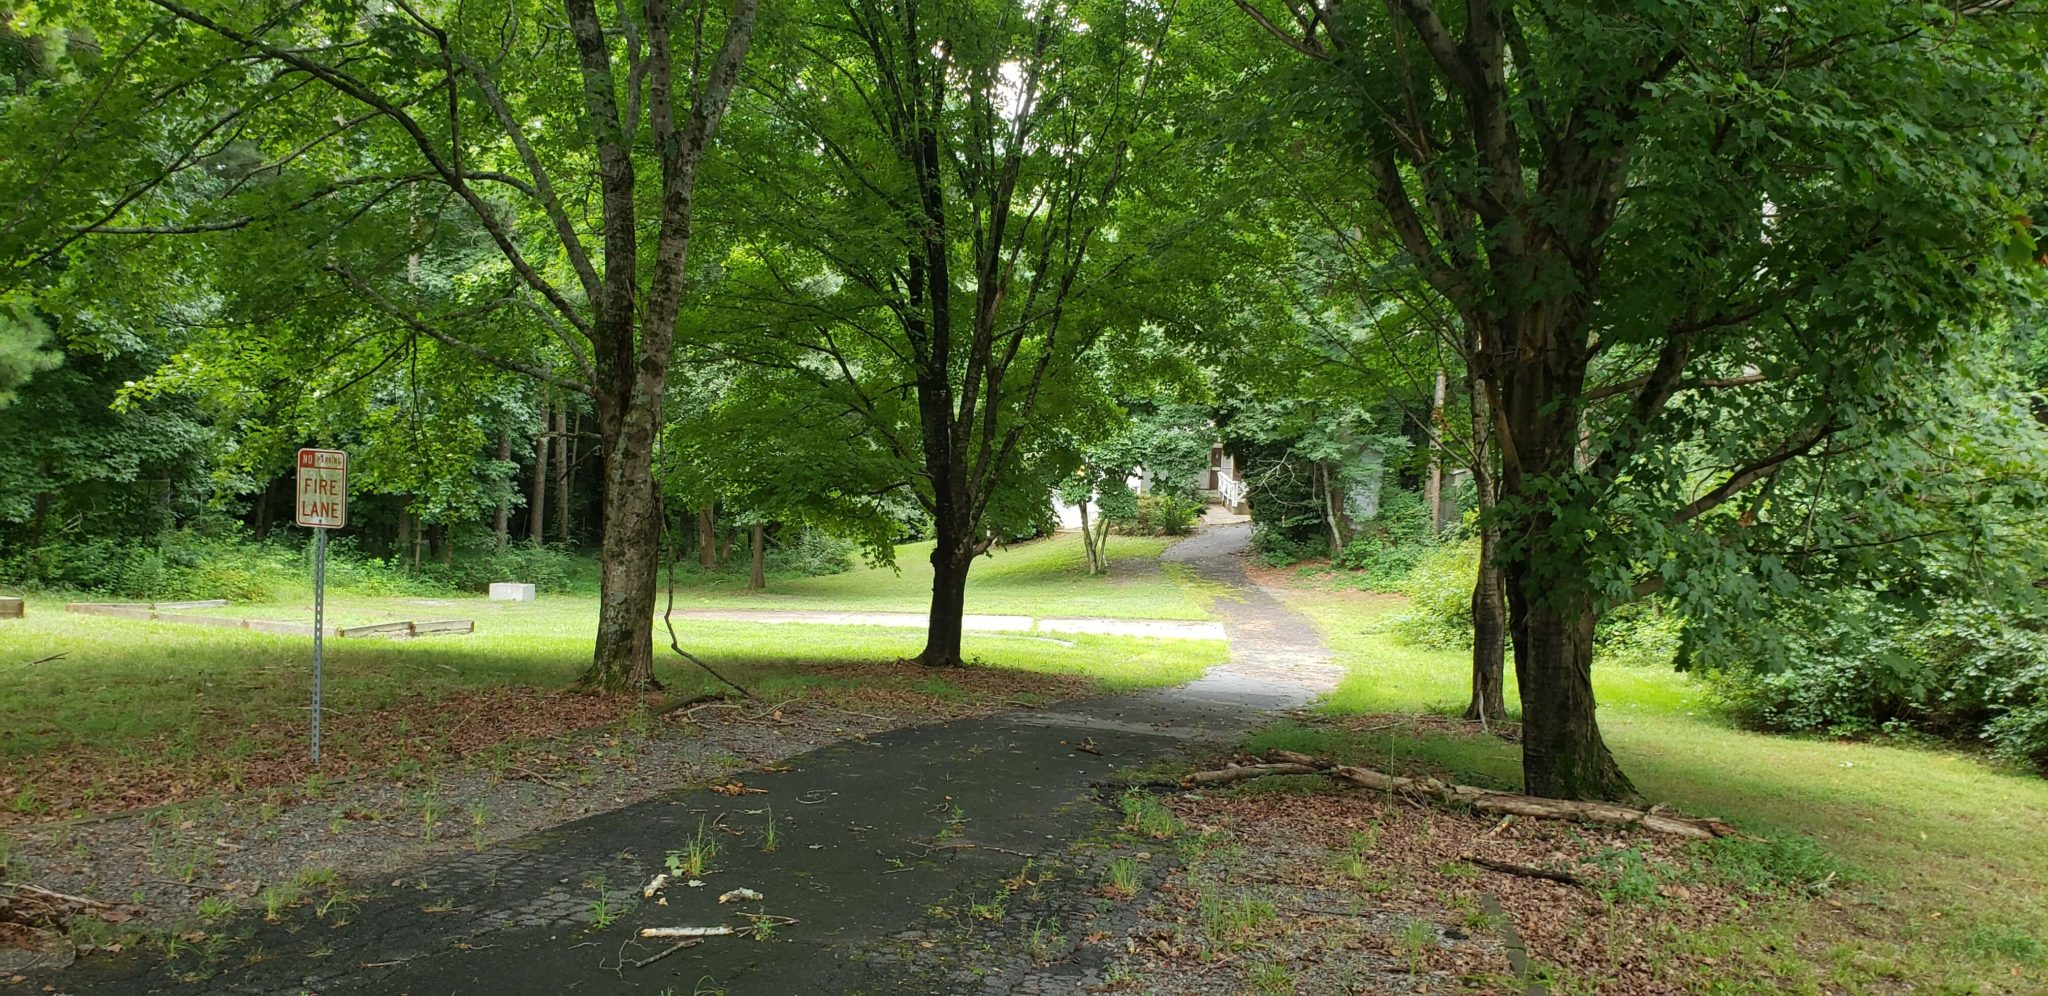 driveway with trees